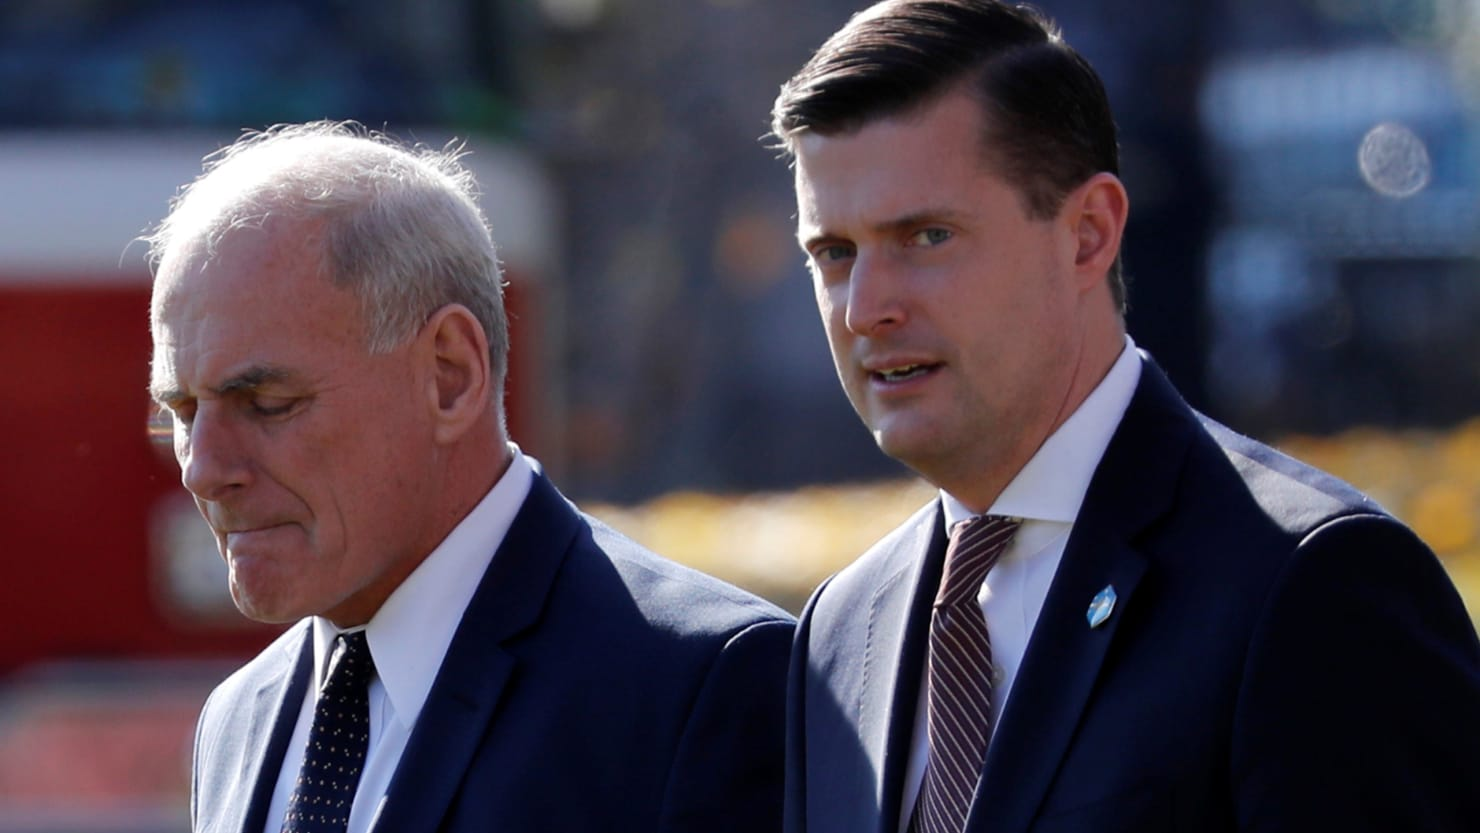 Rob Porter's Ex-Wife: He Has Shown No 'Regret or Contrition' About Domestic Abuse